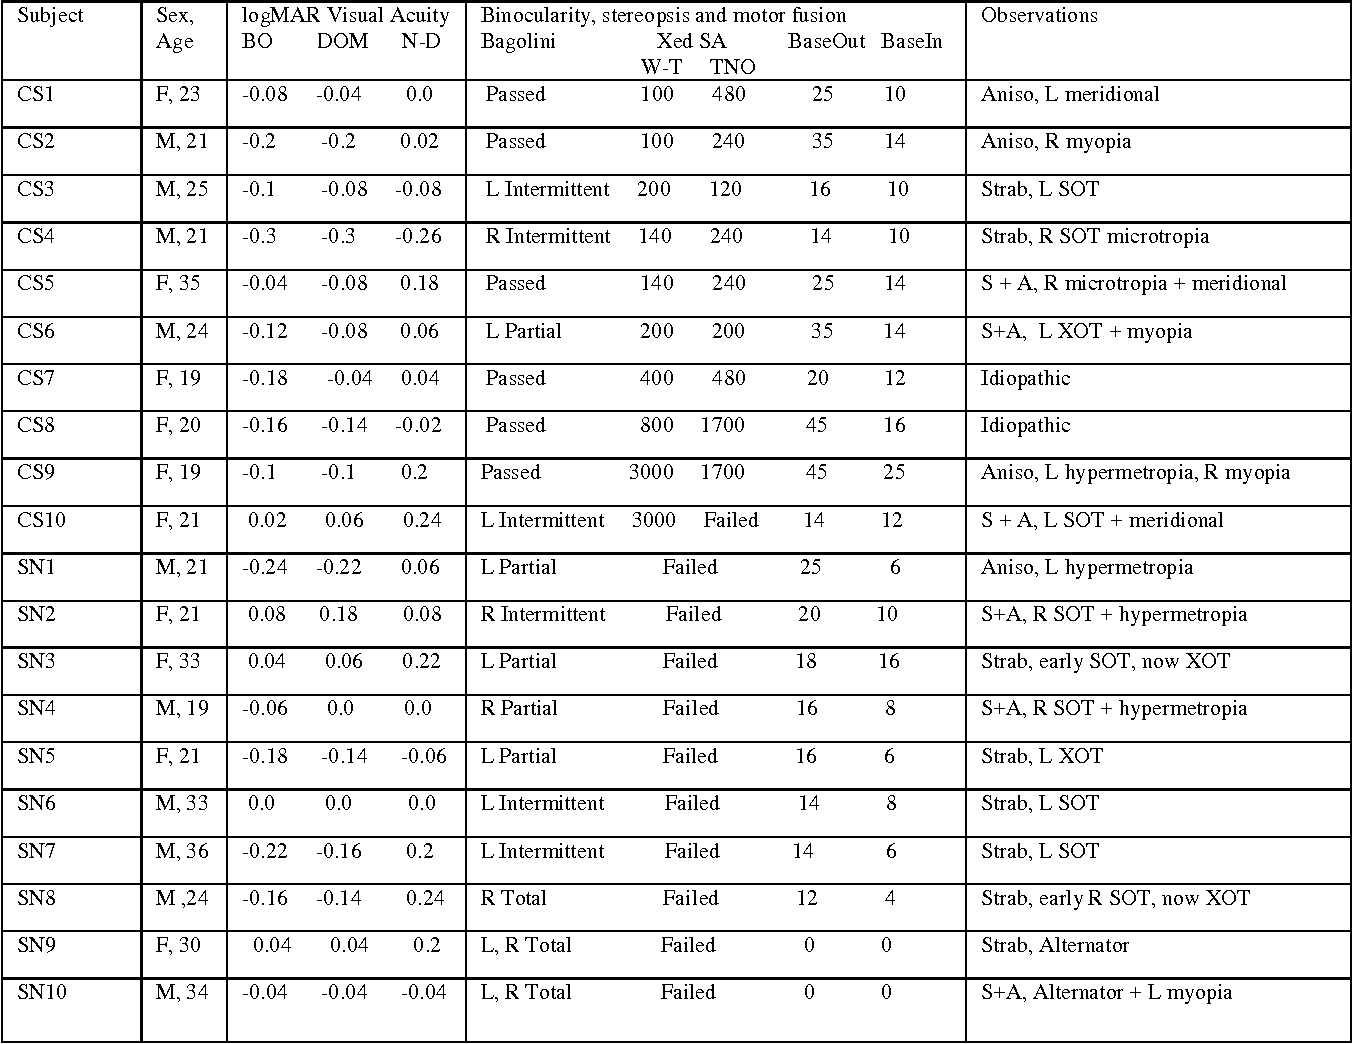 Table 1: Details of the Stereo-deficient Subjects